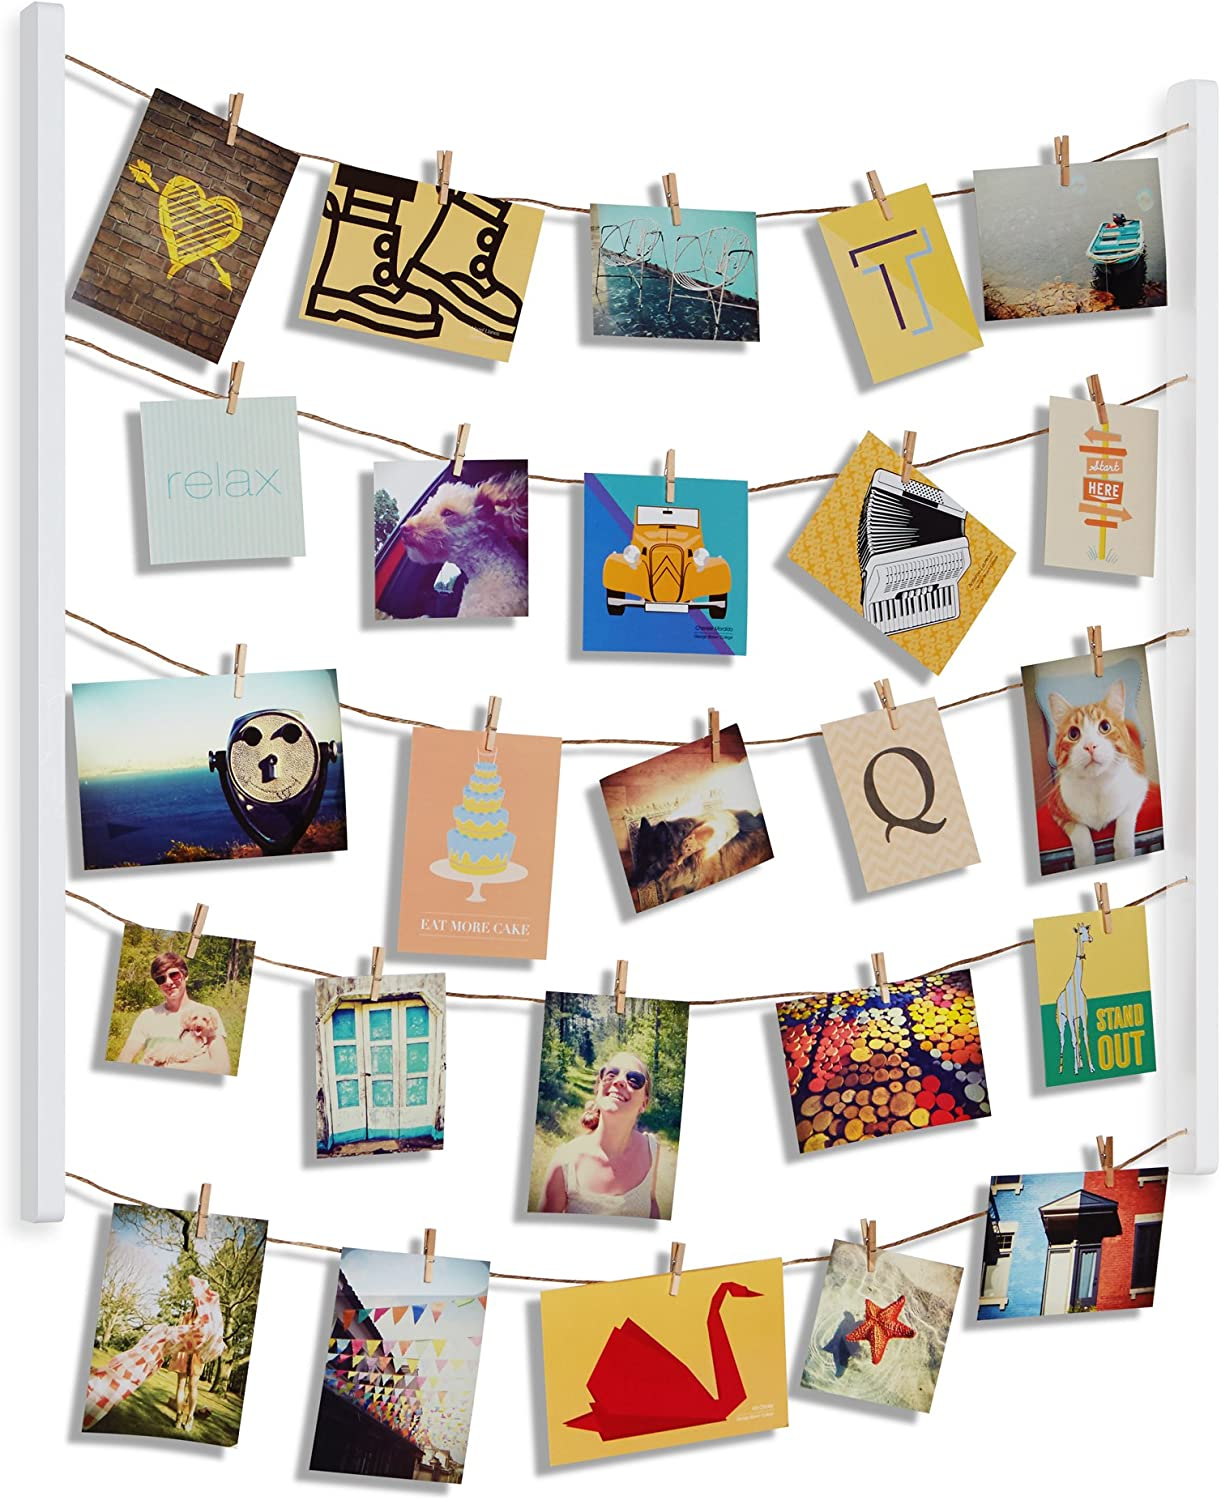 Amazon Com Umbra Hangit Photo Display Diy Picture Frames Collage Set Includes Picture Hanging Wire Twine Cords Natural Wood Wall Mounts And Clothespin Clips For Hanging Photos Prints And Artwork White Home